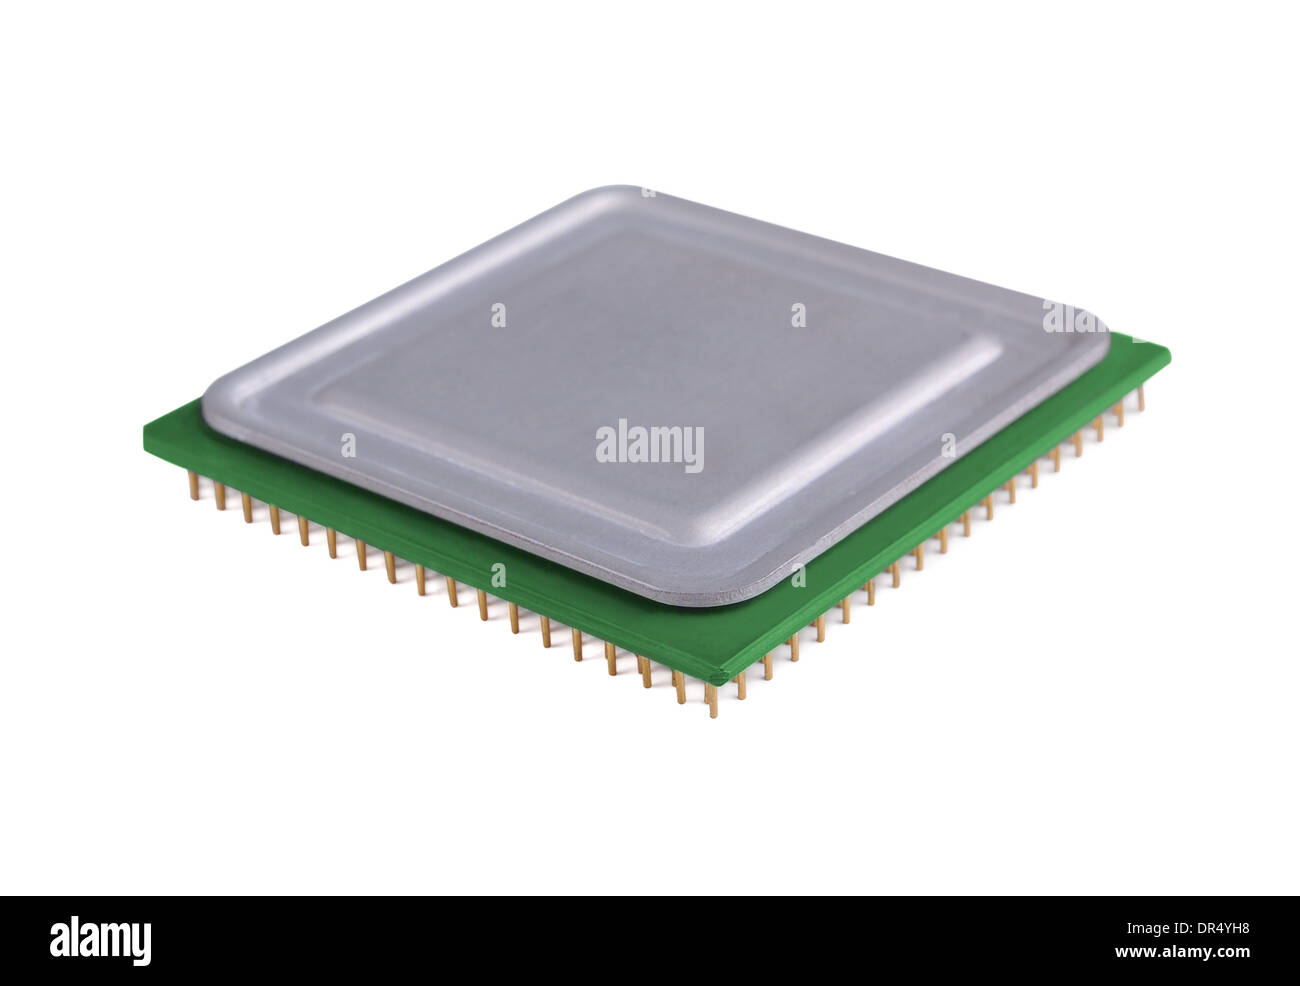 Processor on a white background - Stock Image